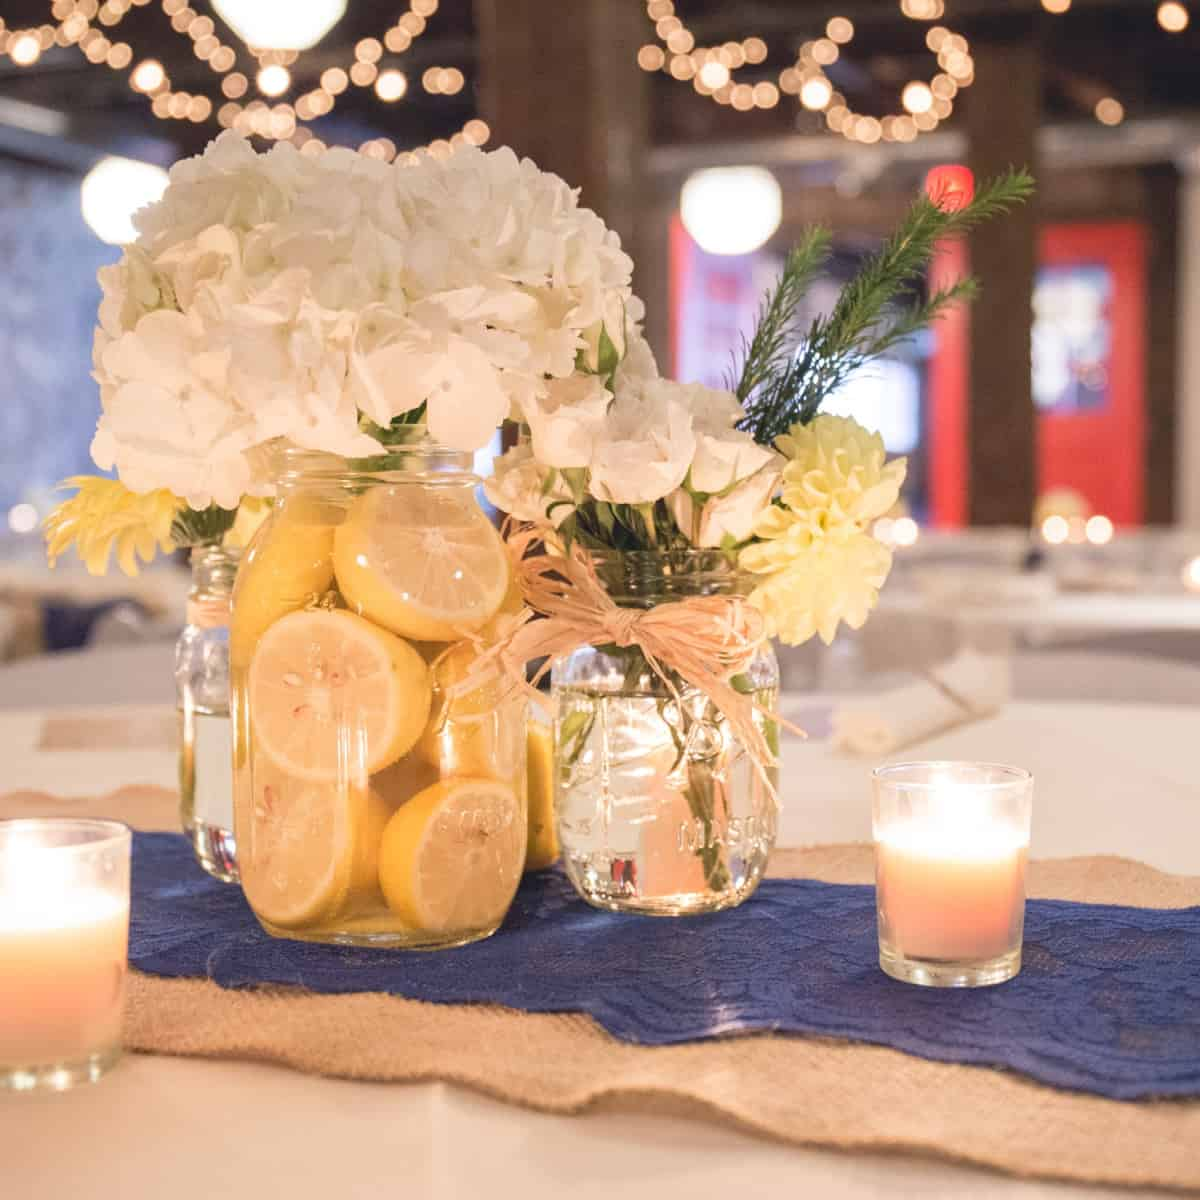 This portrait shows a wedding reception table centerpiece of white and yellow flowers in mason jars with lemons. Under the flowers is a burlap table runner with a blue lace table runner on top of it. There are small, lit candles surrounding the centerpiece. There are other tables and lights in the background.